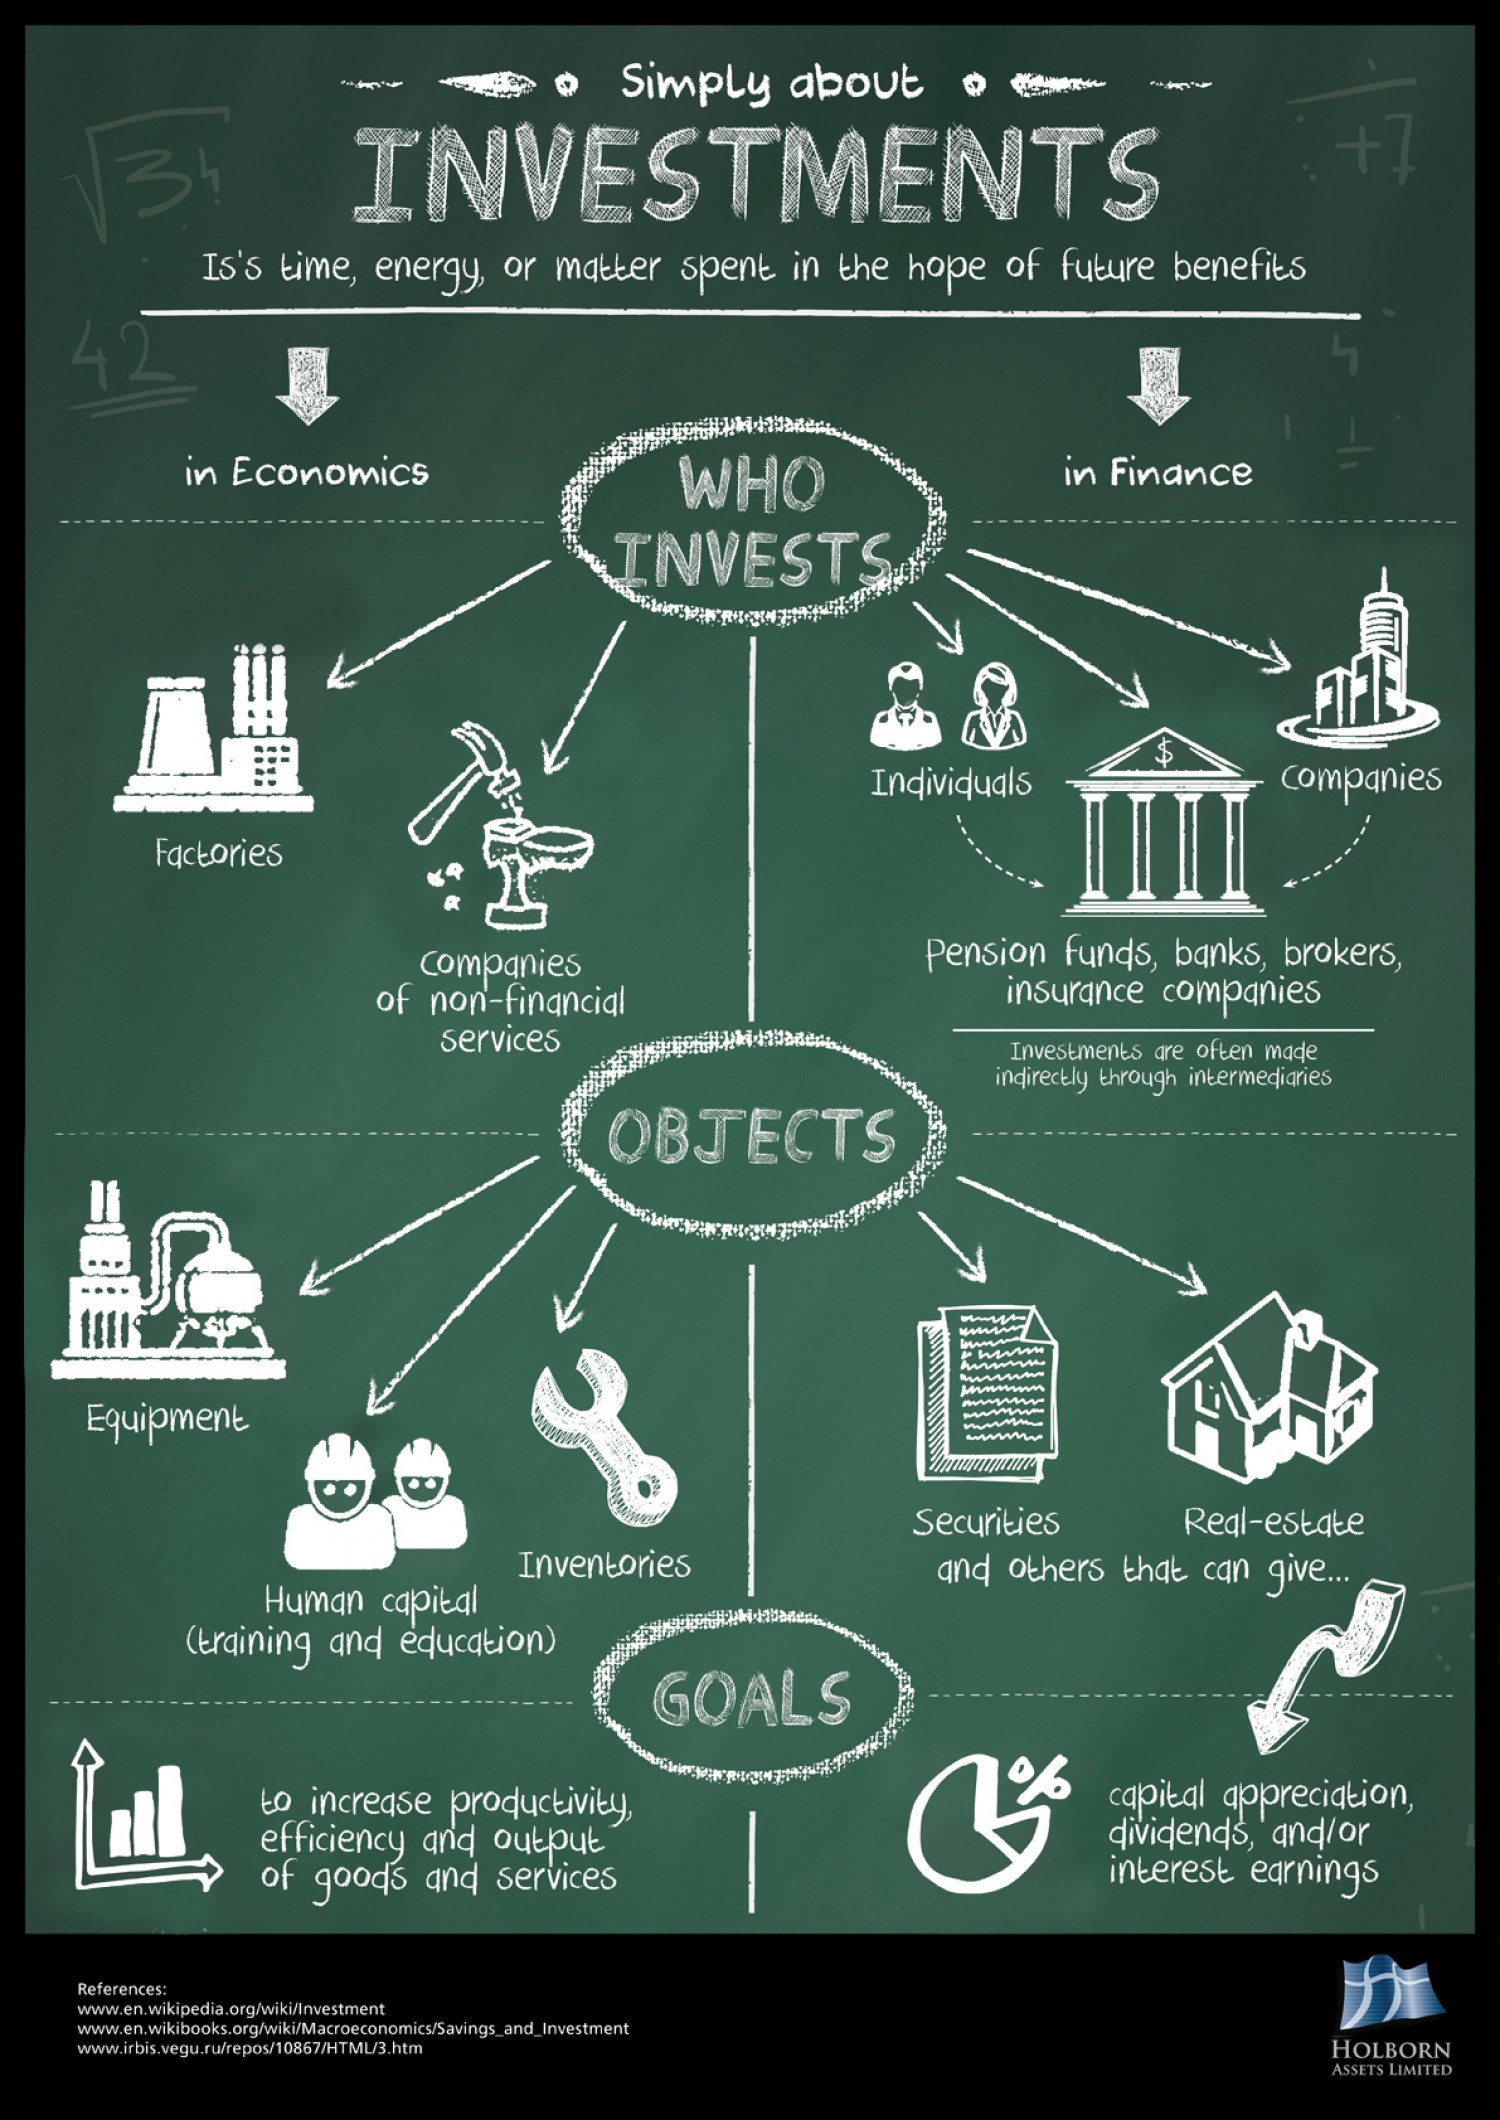 Simply about Investments Infographic